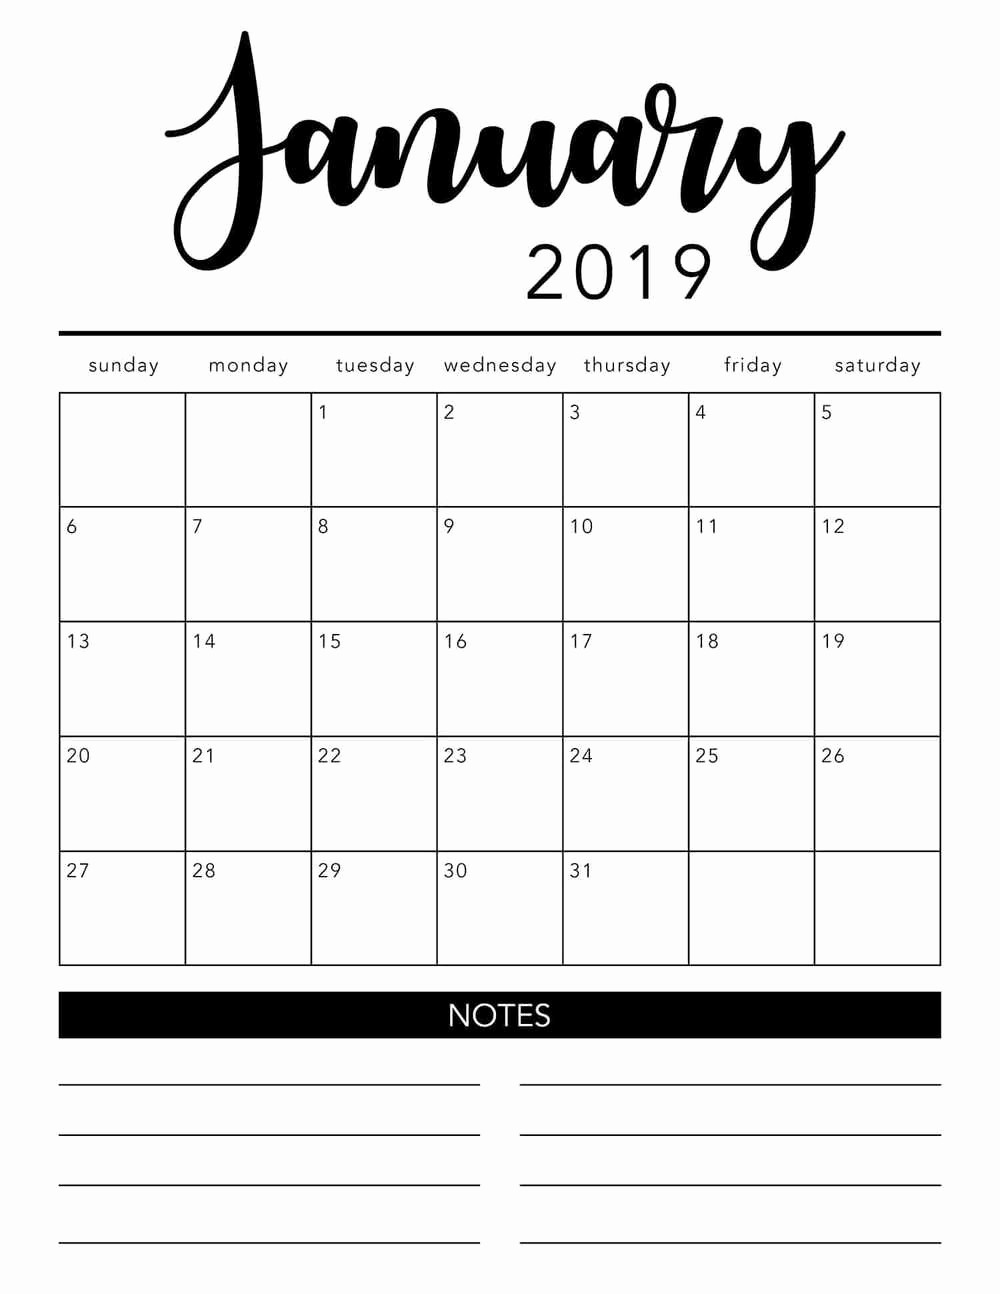 Free Monthly Calendar Template 2019 Inspirational Free 2019 Printable Calendar Template 2 Colors I